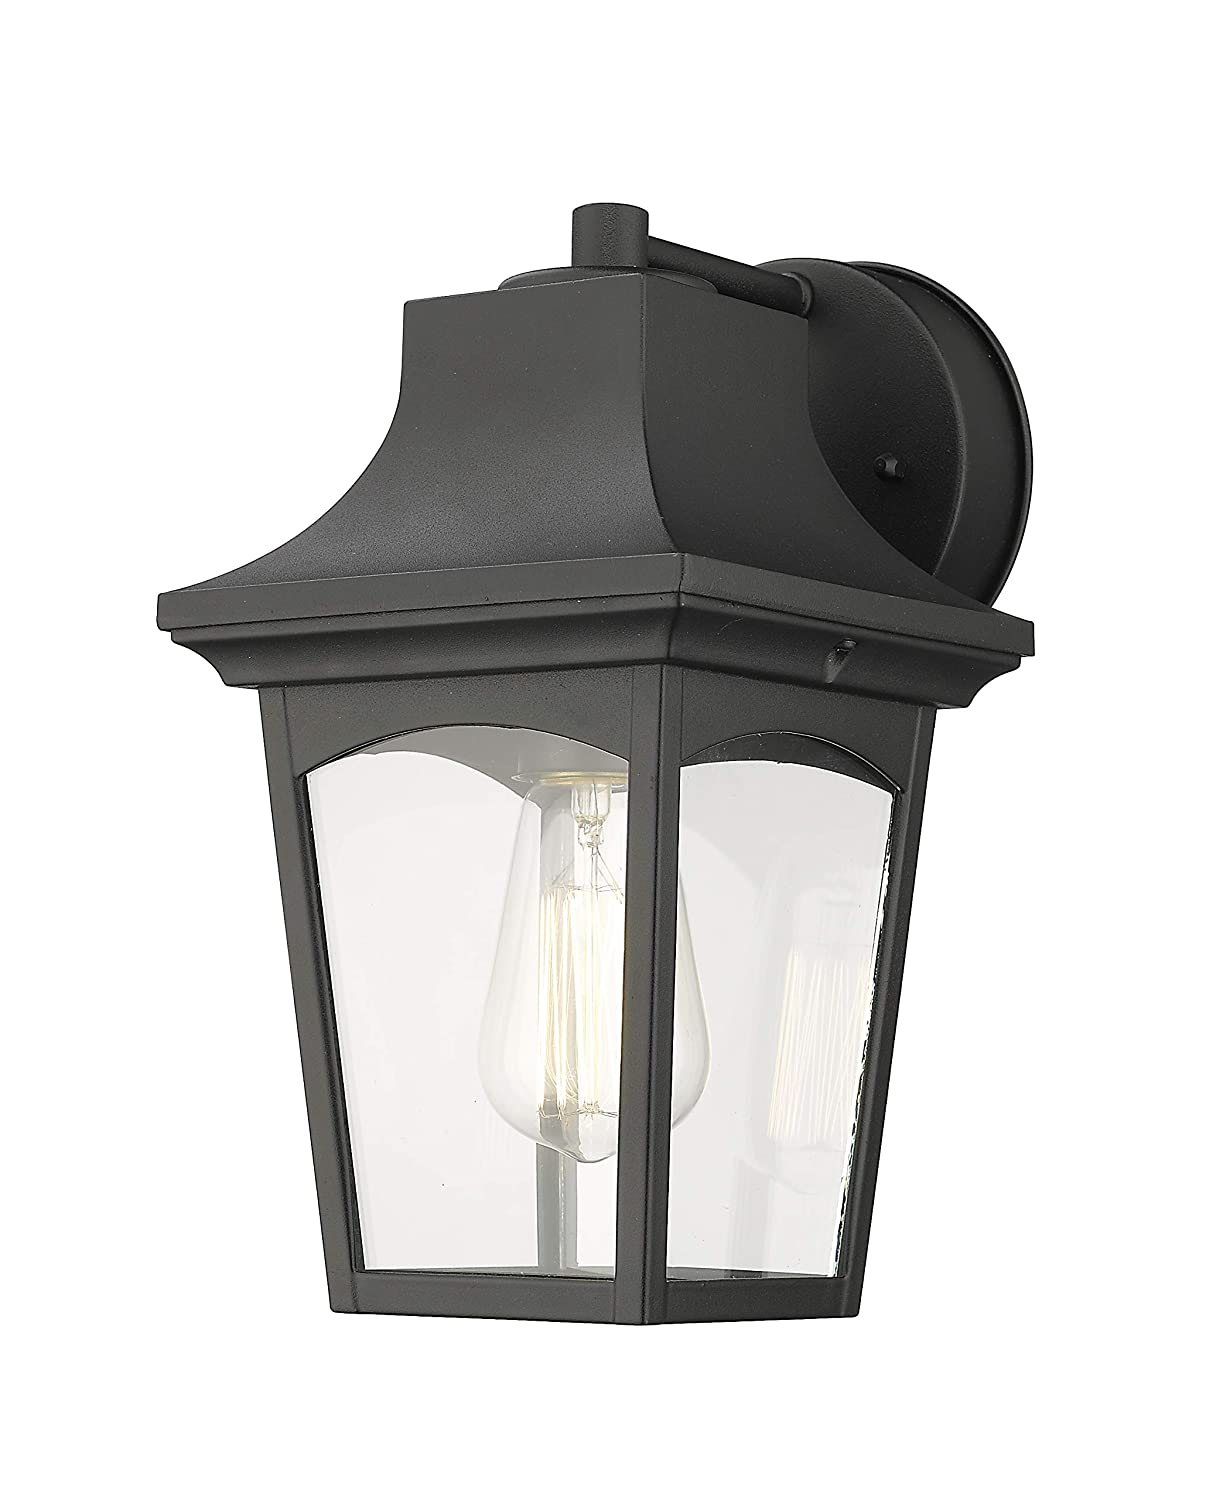 Emliviar outdoor lighting fixtures wall mount 1 light wall sconce black finish with clear glass shade 0406 wd amazon com